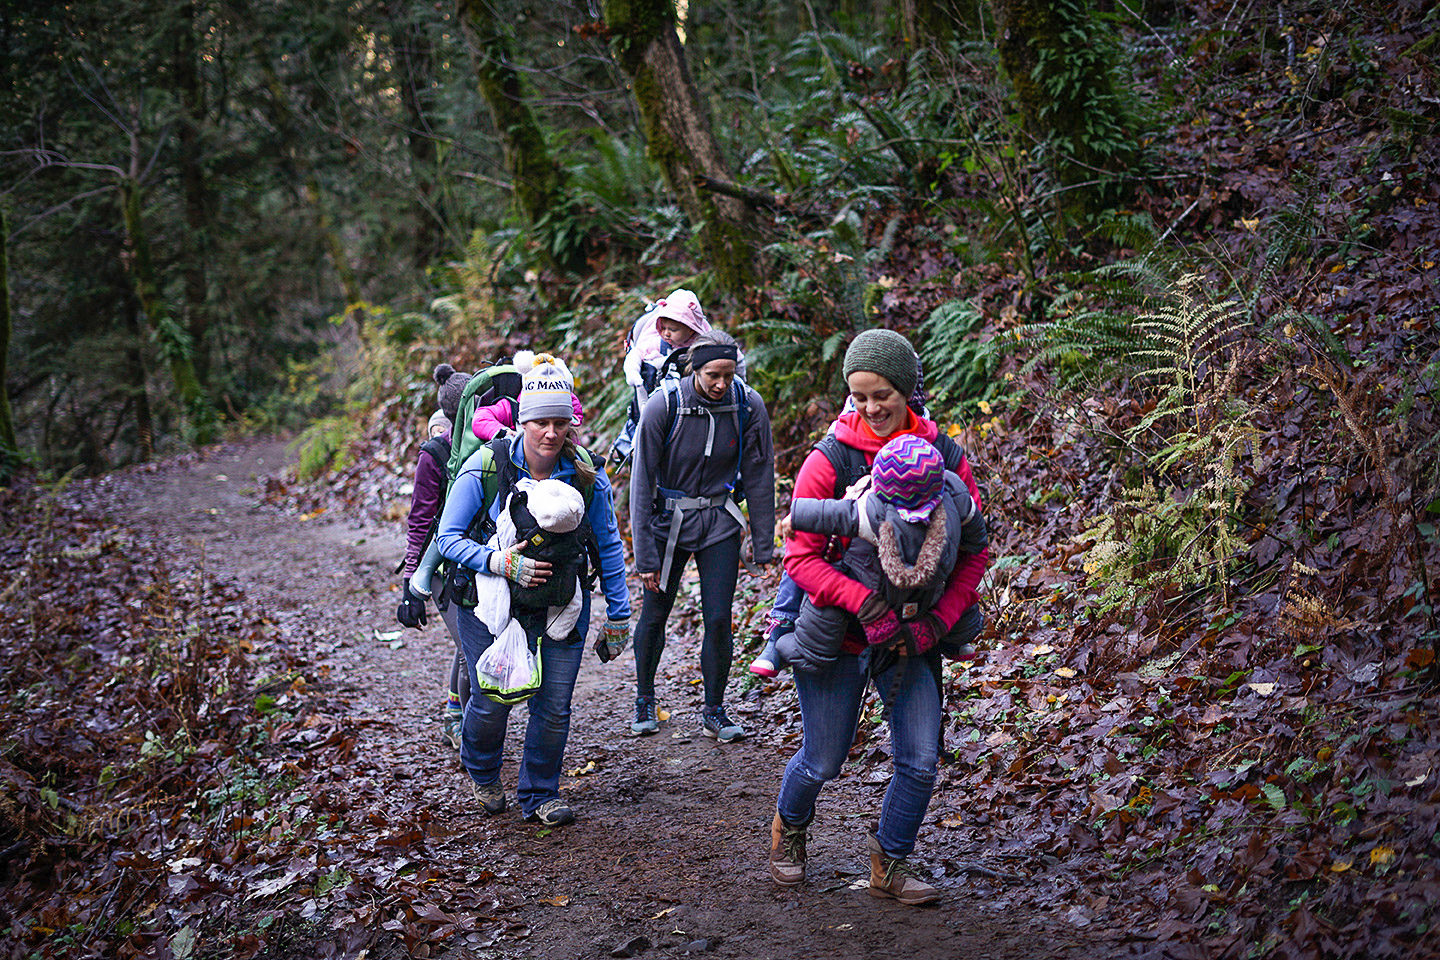 Hiking Challenges to Get Your Family Outside in 2018 - Hike it Baby dd09a0abc5dfb